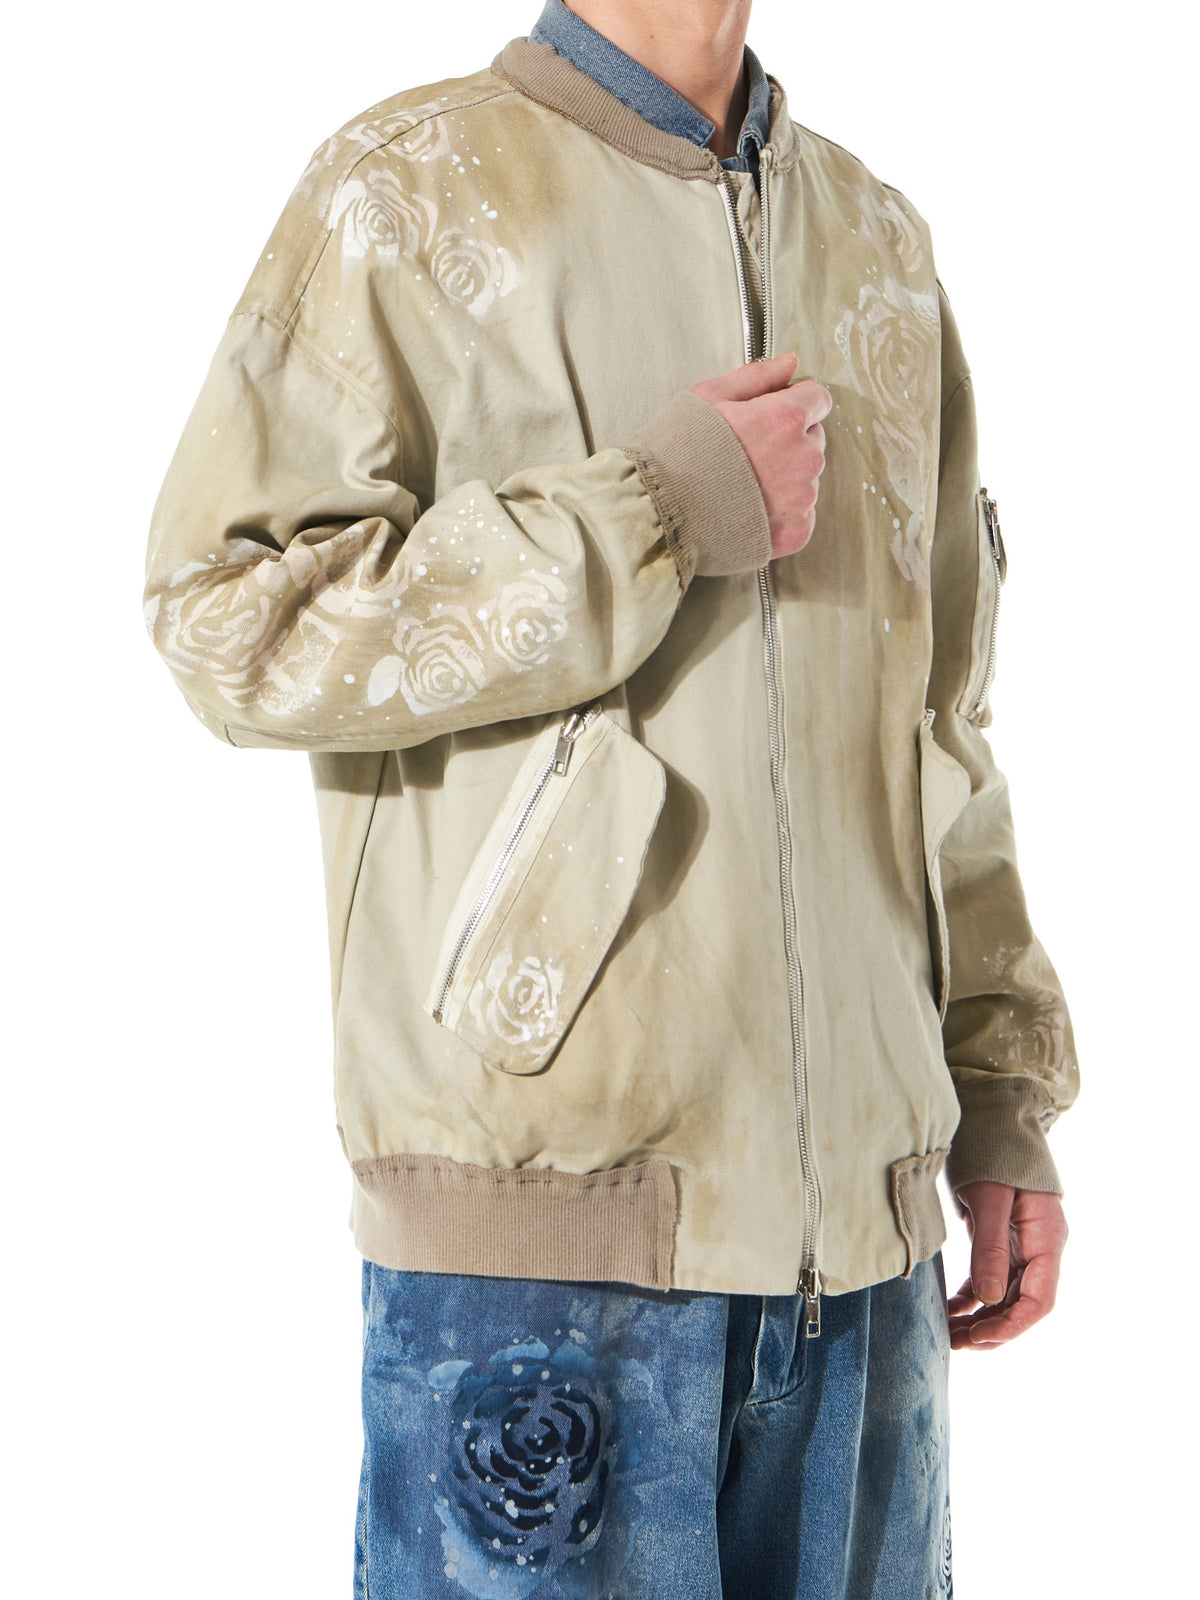 Stenciled Floral Bomber (MA172079 BEIGE) - H. Lorenzo